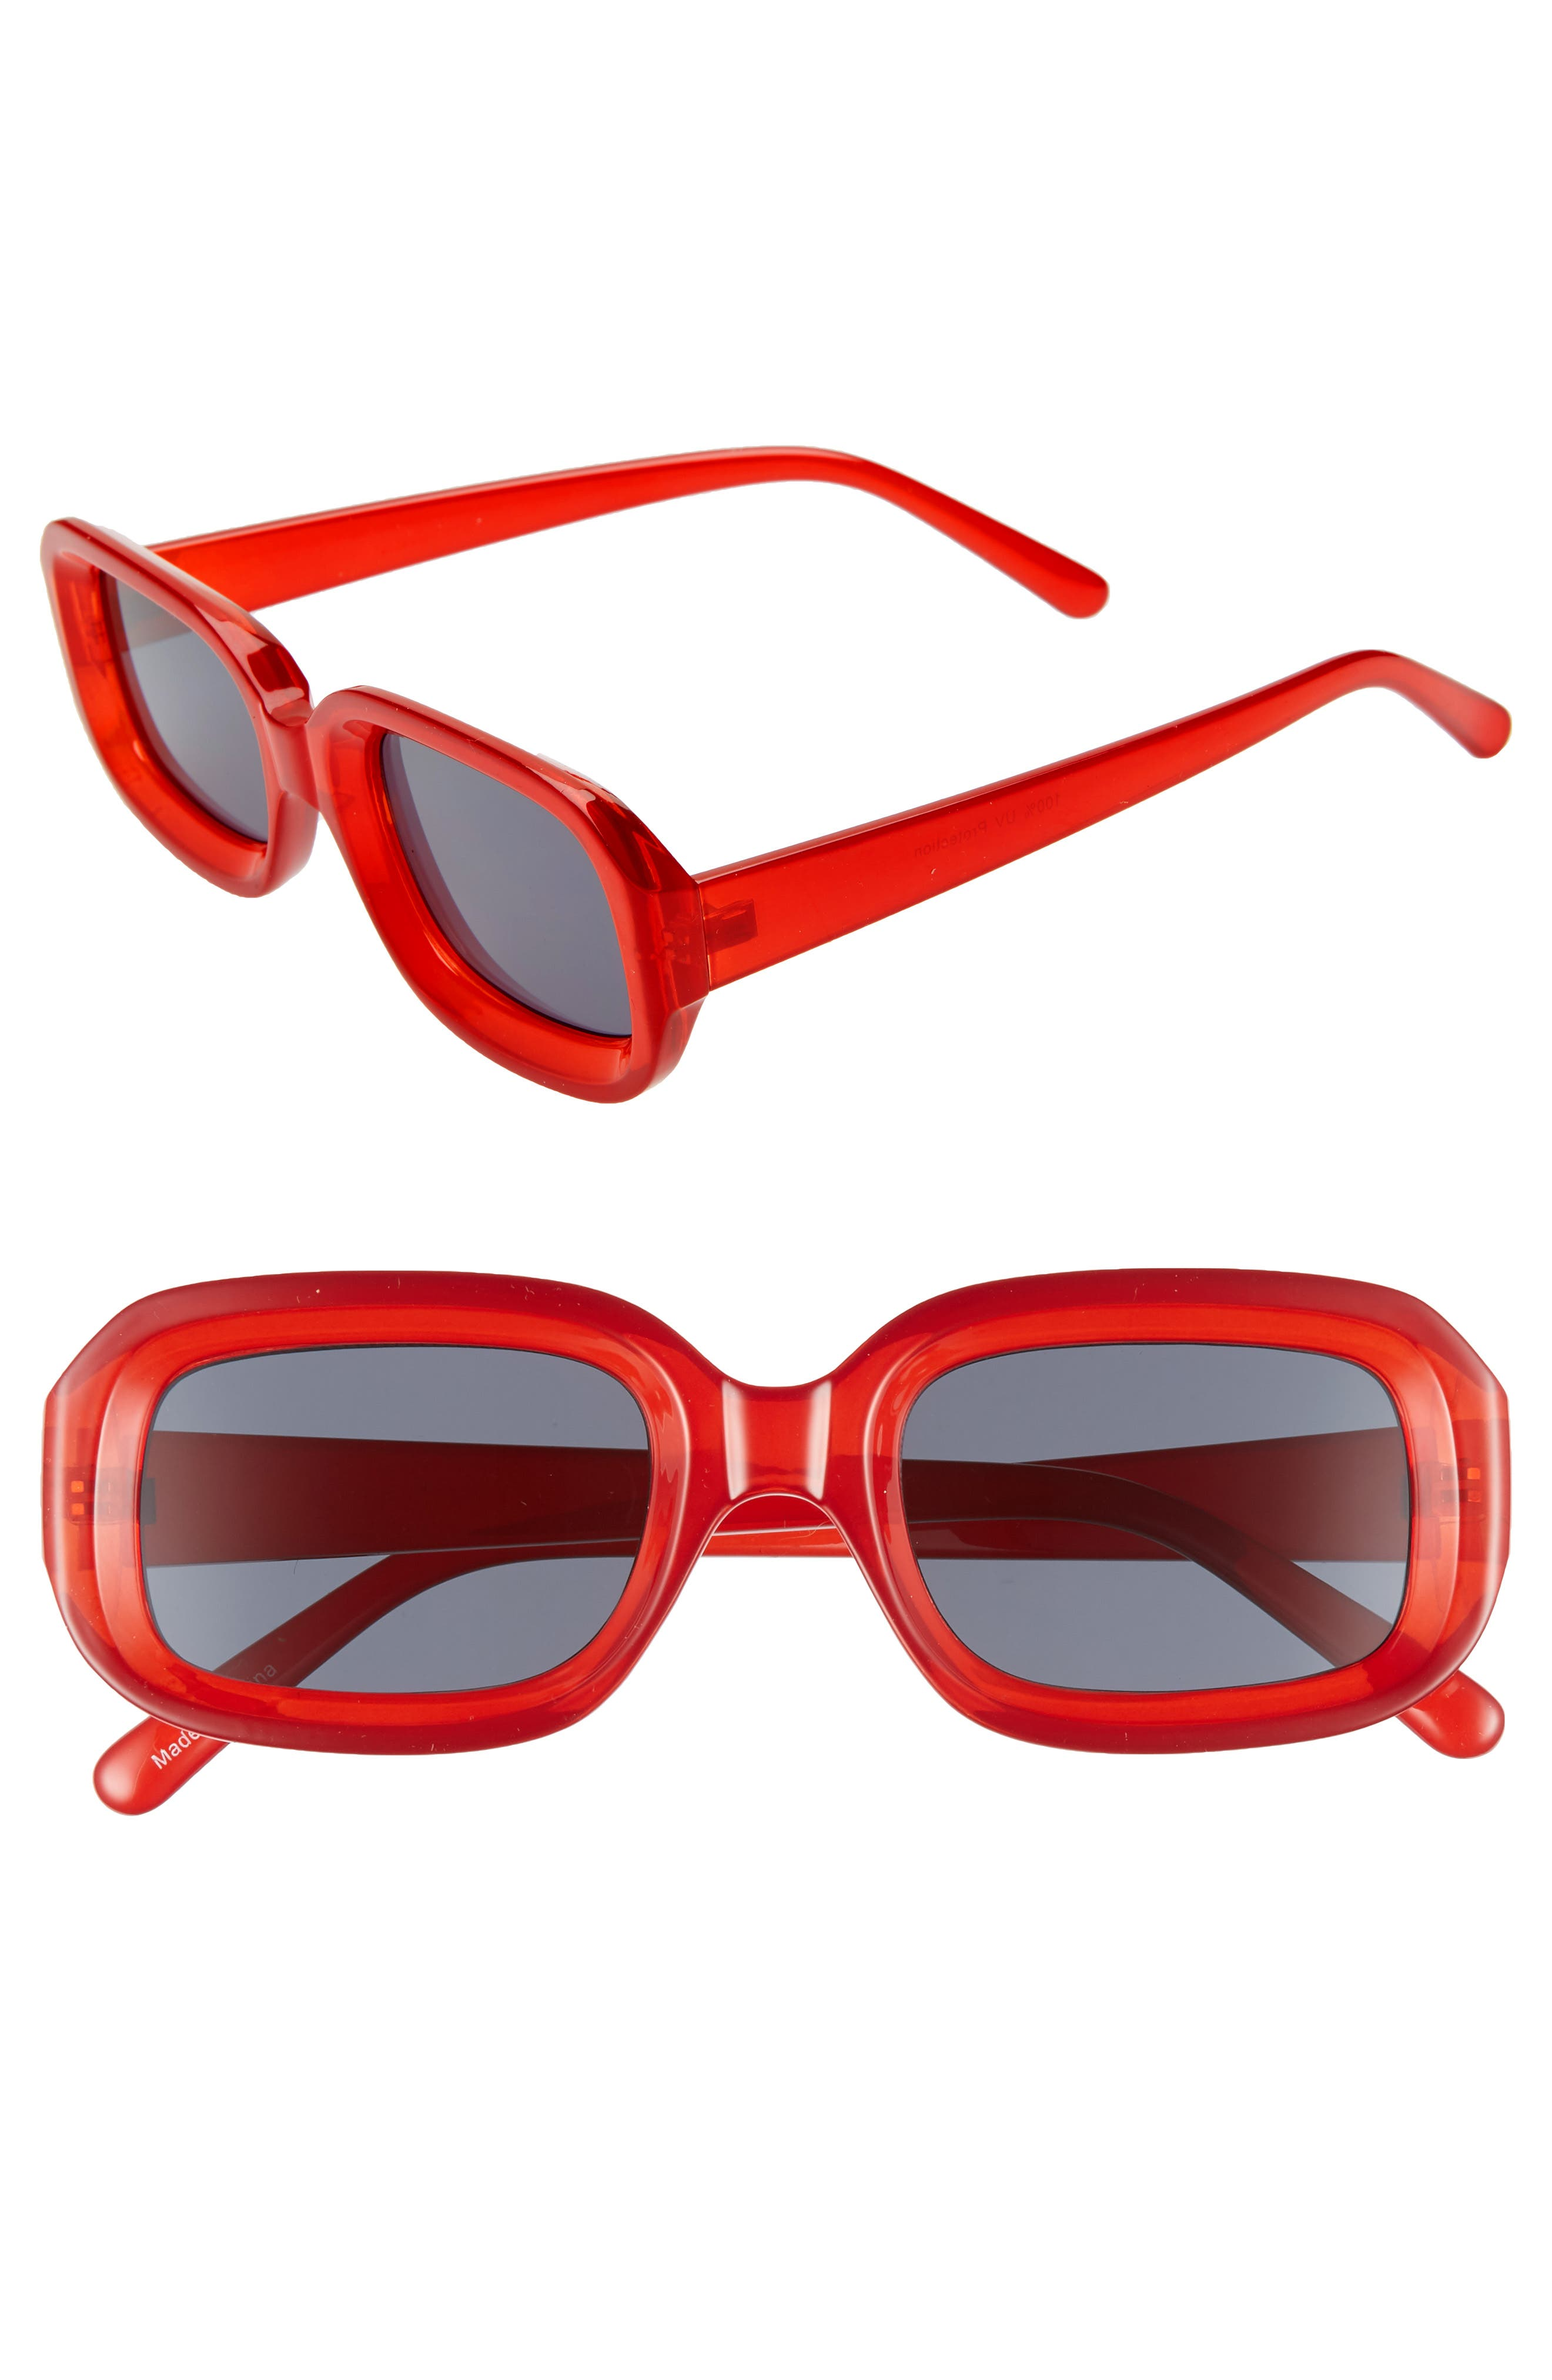 66mm Inset Square Sunglasses,                         Main,                         color, RED/ BLACK